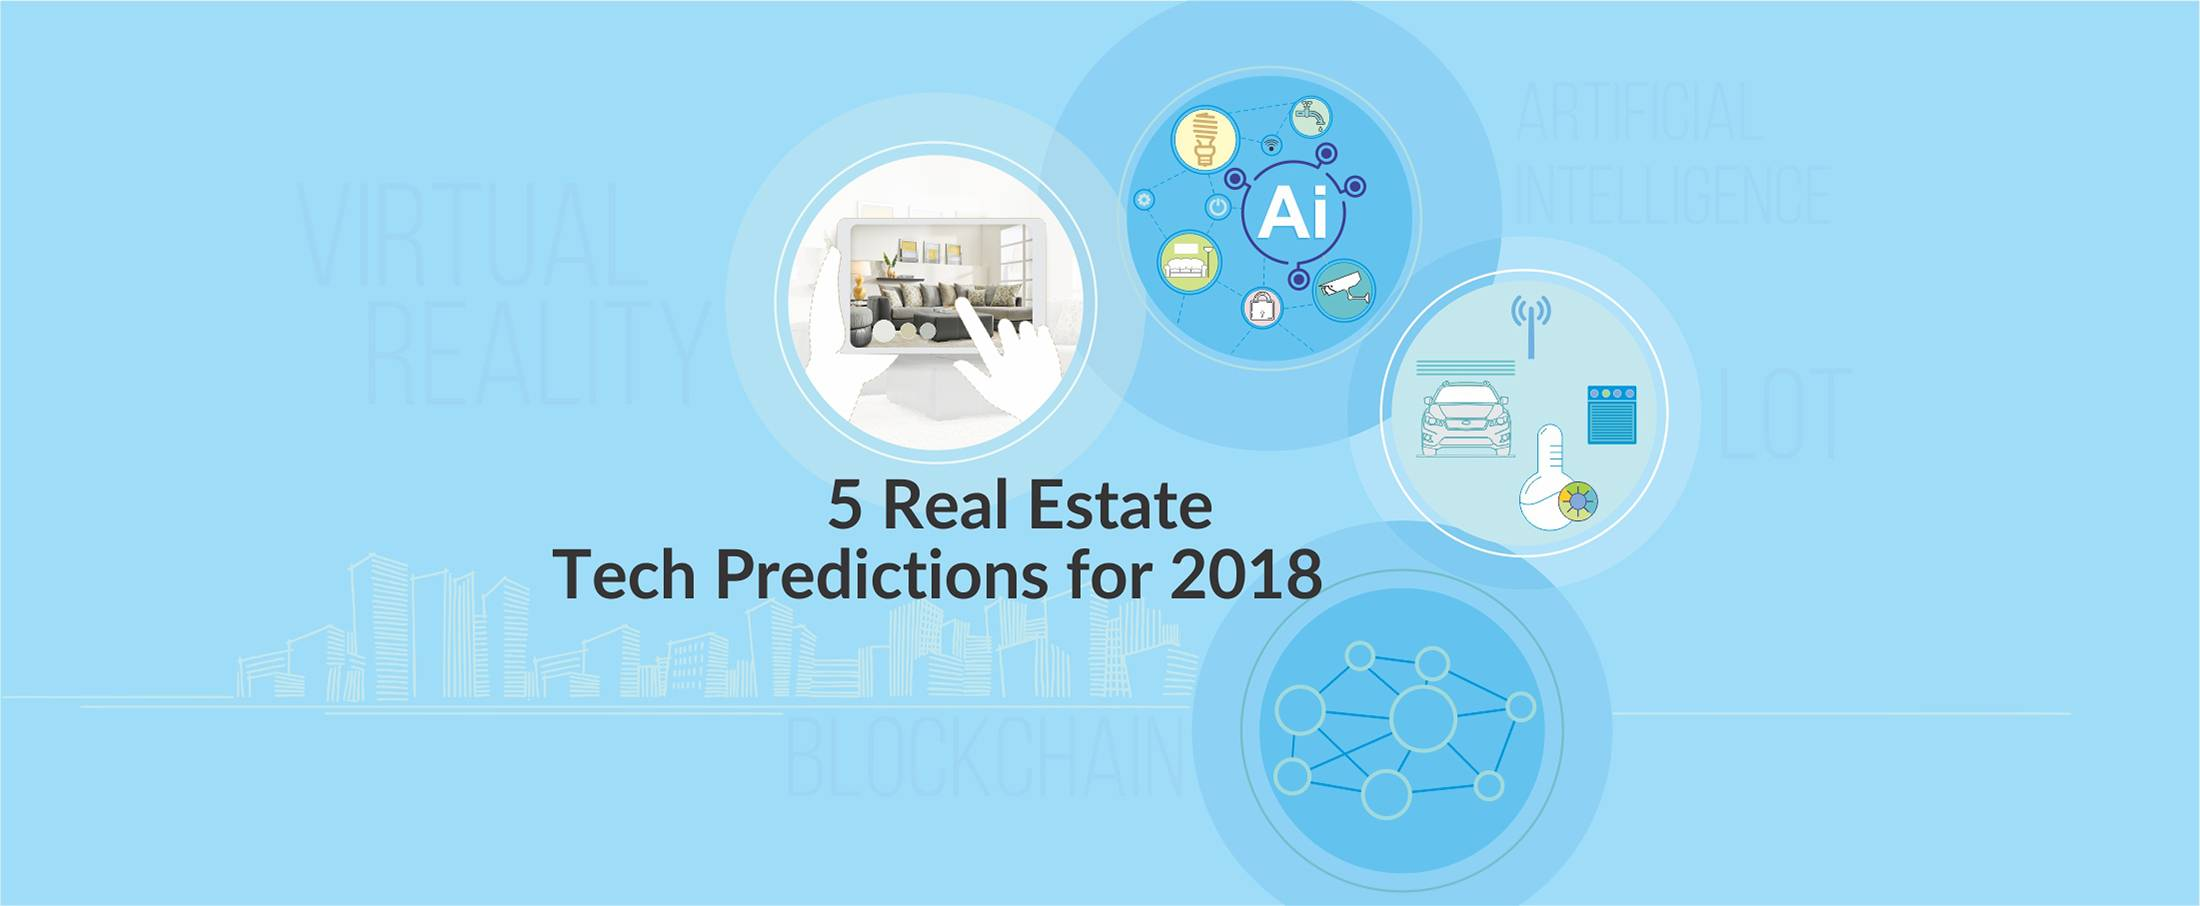 5 Real Estate Tech Trend Predictions for 2018